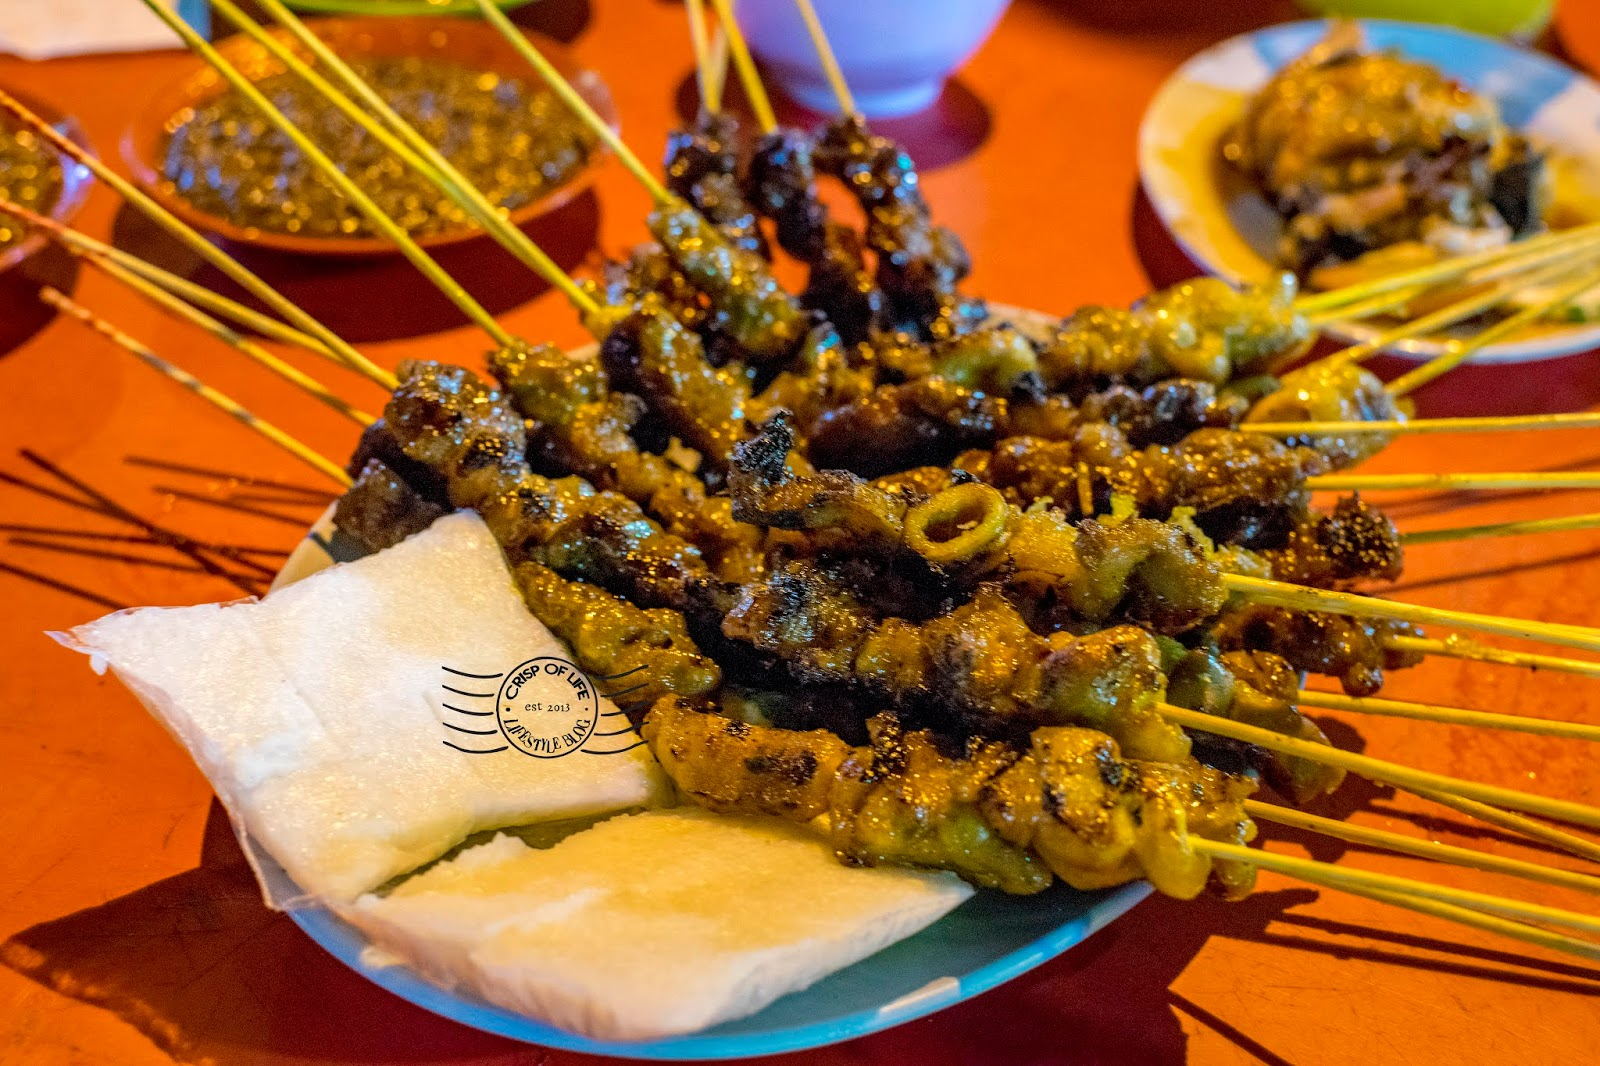 Satay Setia House with 9 different satay @ Alor Setar, Kedah